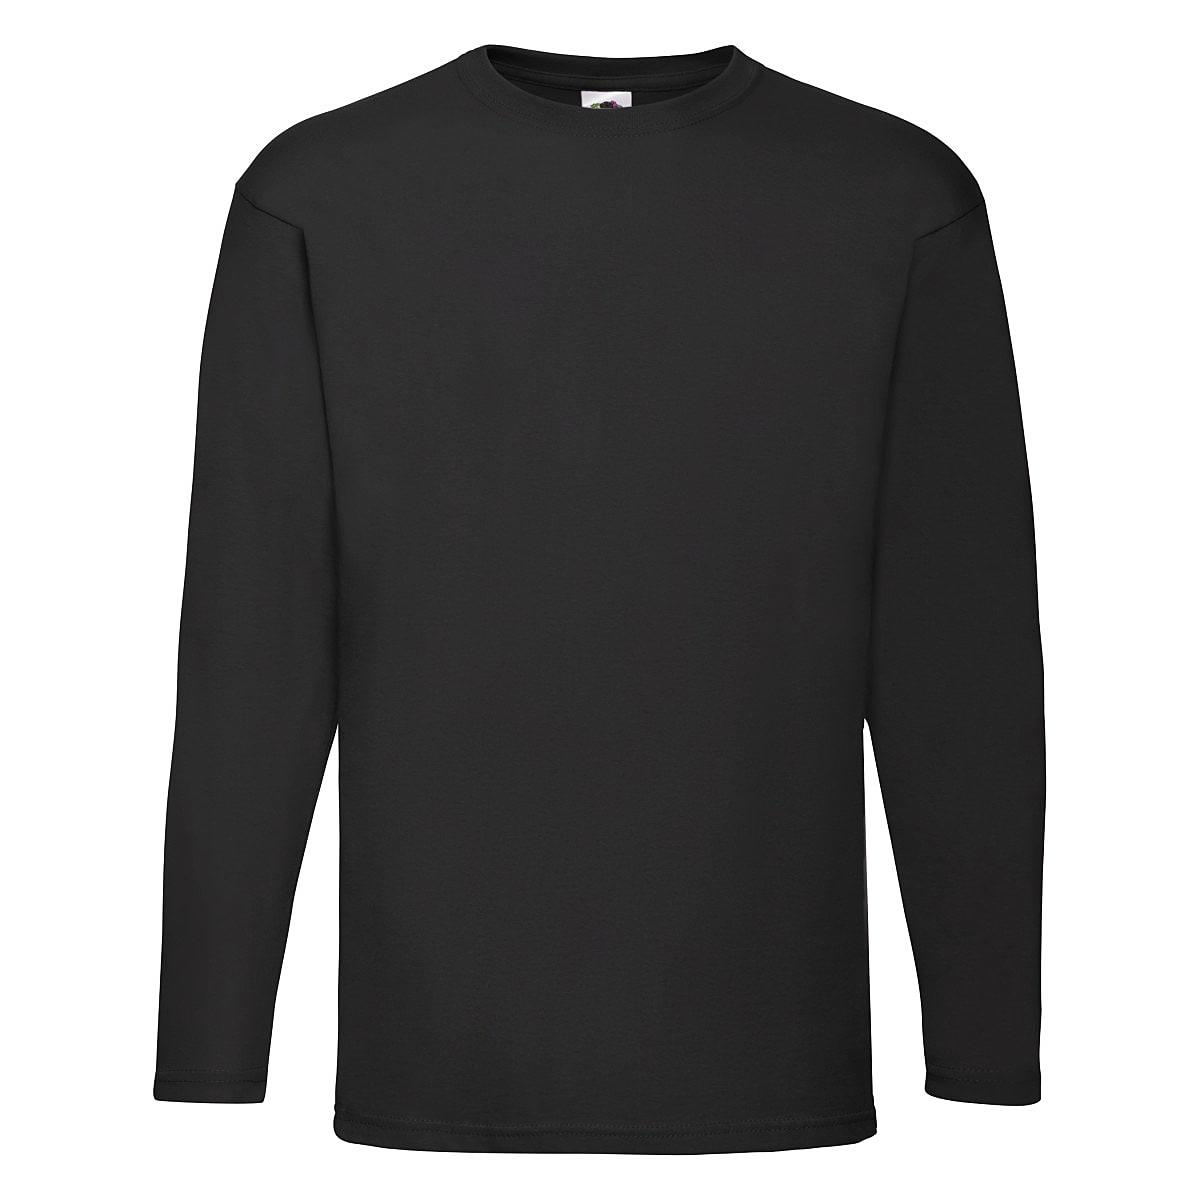 Fruit Of The Loom Valueweight Long-Sleeve T-Shirt in Black (Product Code: 61038)